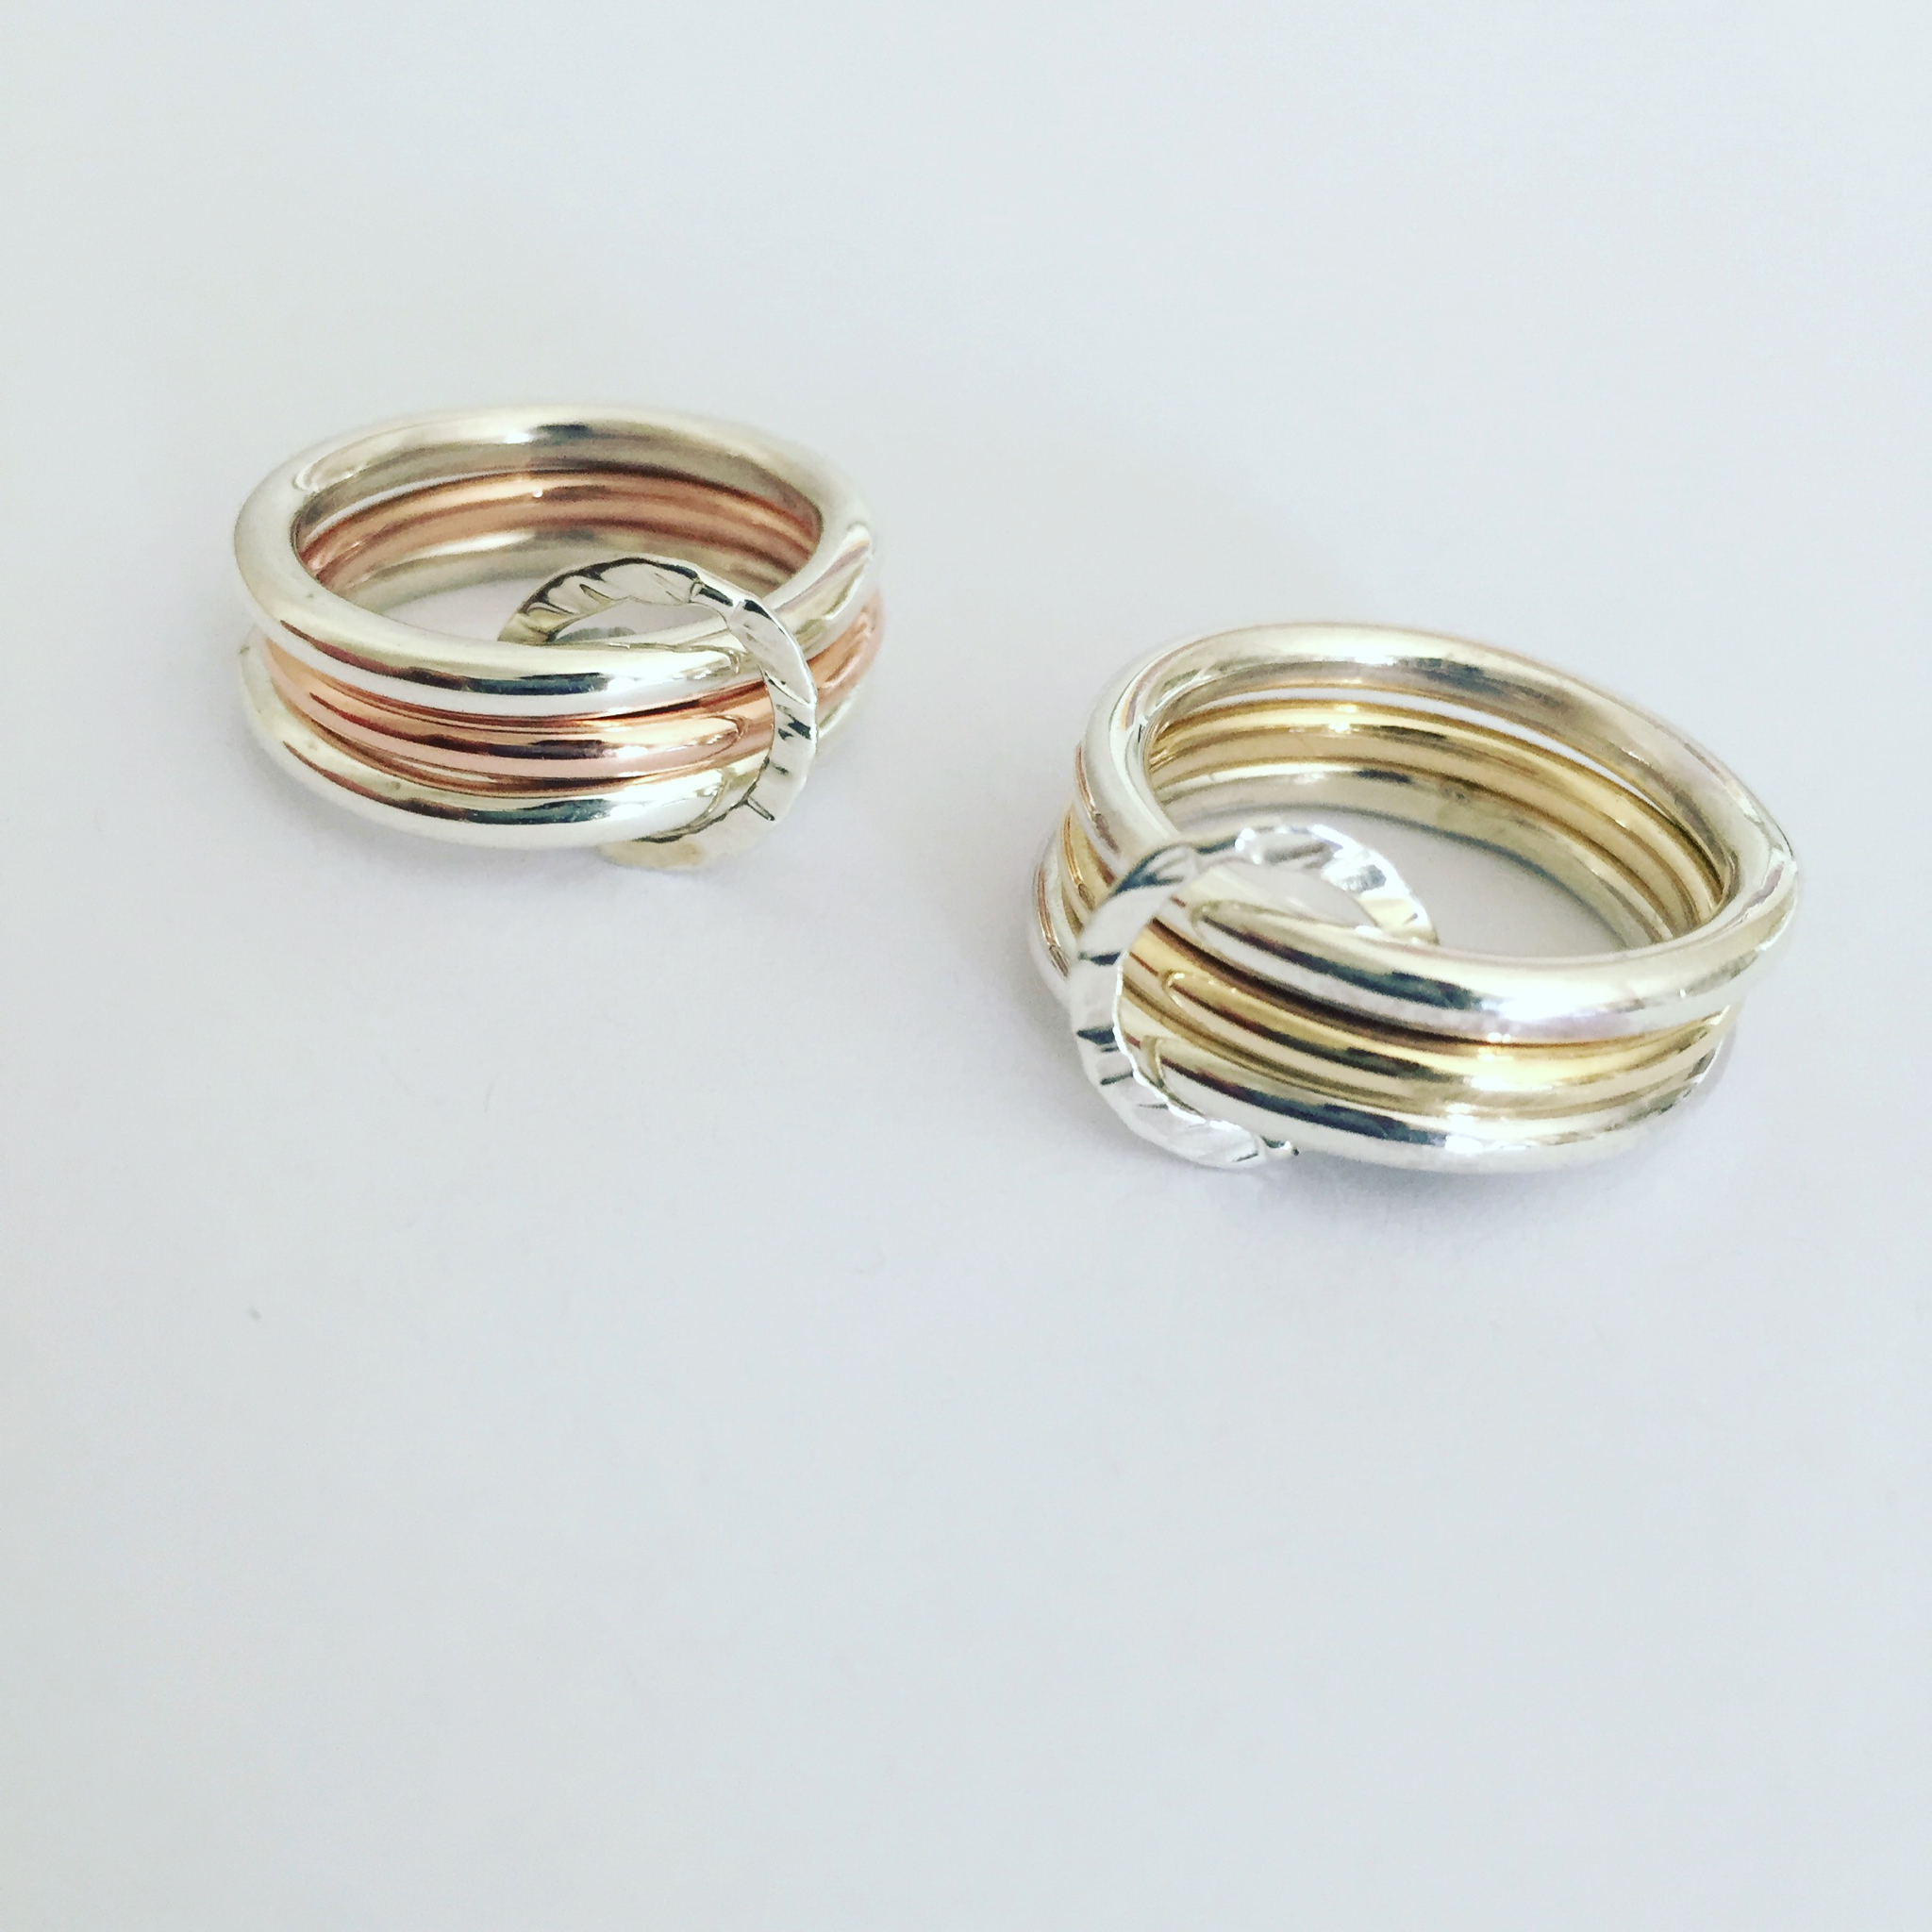 Rose Gold and Yellow Gold with Sterling Silver Ring Sets $360 each.